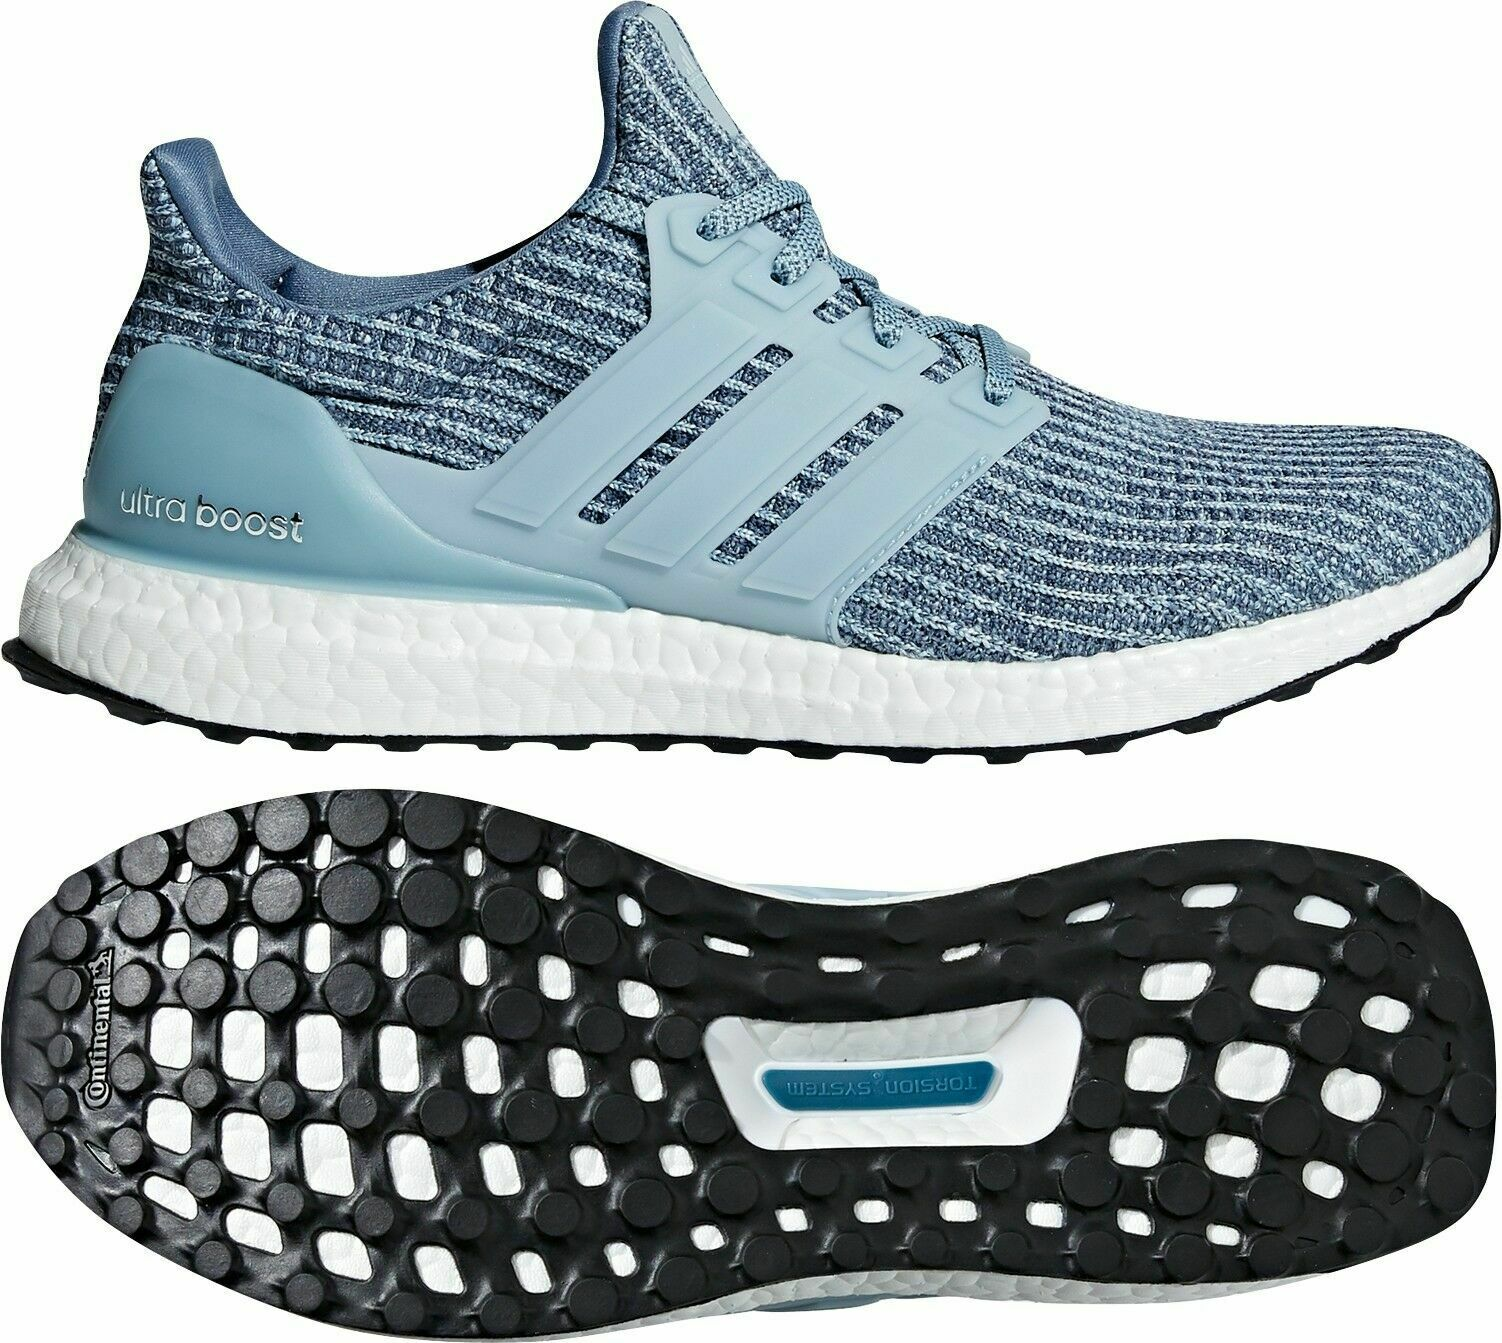 BB6178 Men Adidas-ULTRA BOOST 4.0 Trainers Running-shoes Size 7-13